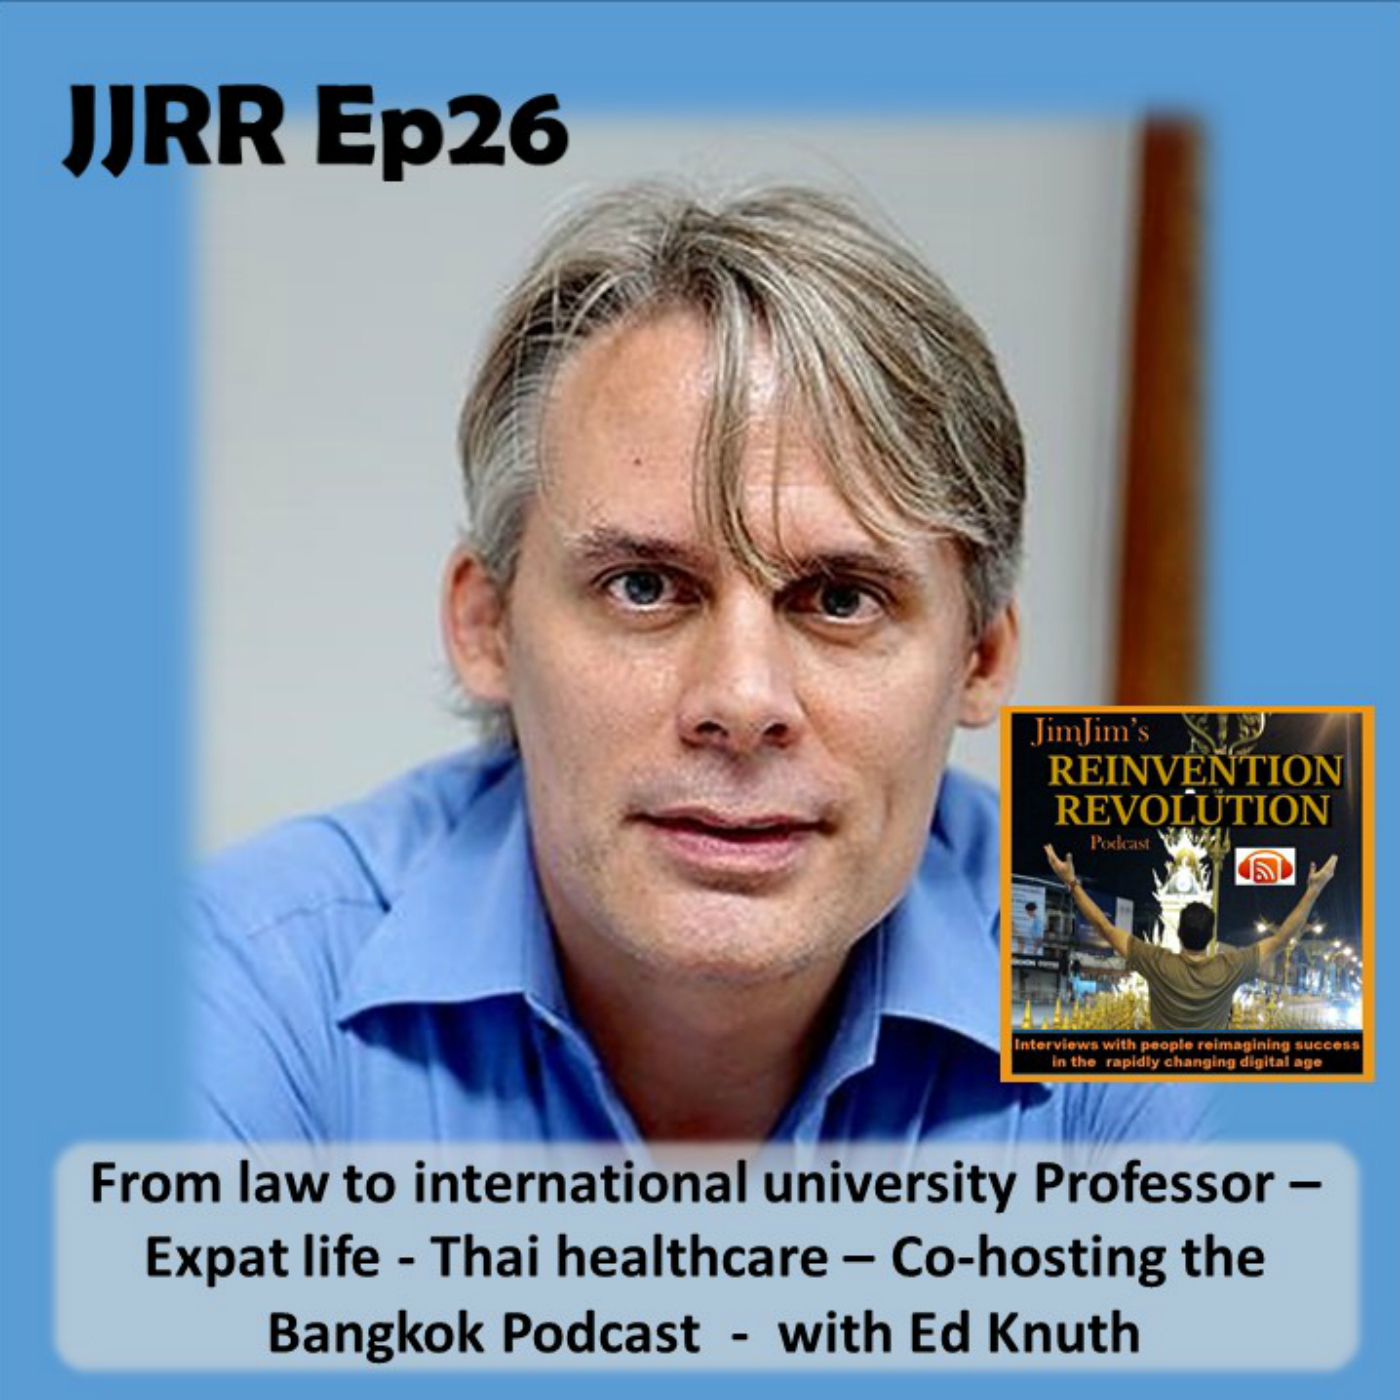 JJRR Ep26 From law to international university Professor – Expat life – Thai healthcare – Co-hosting the  Bangkok Podcast – with Ed Knuth